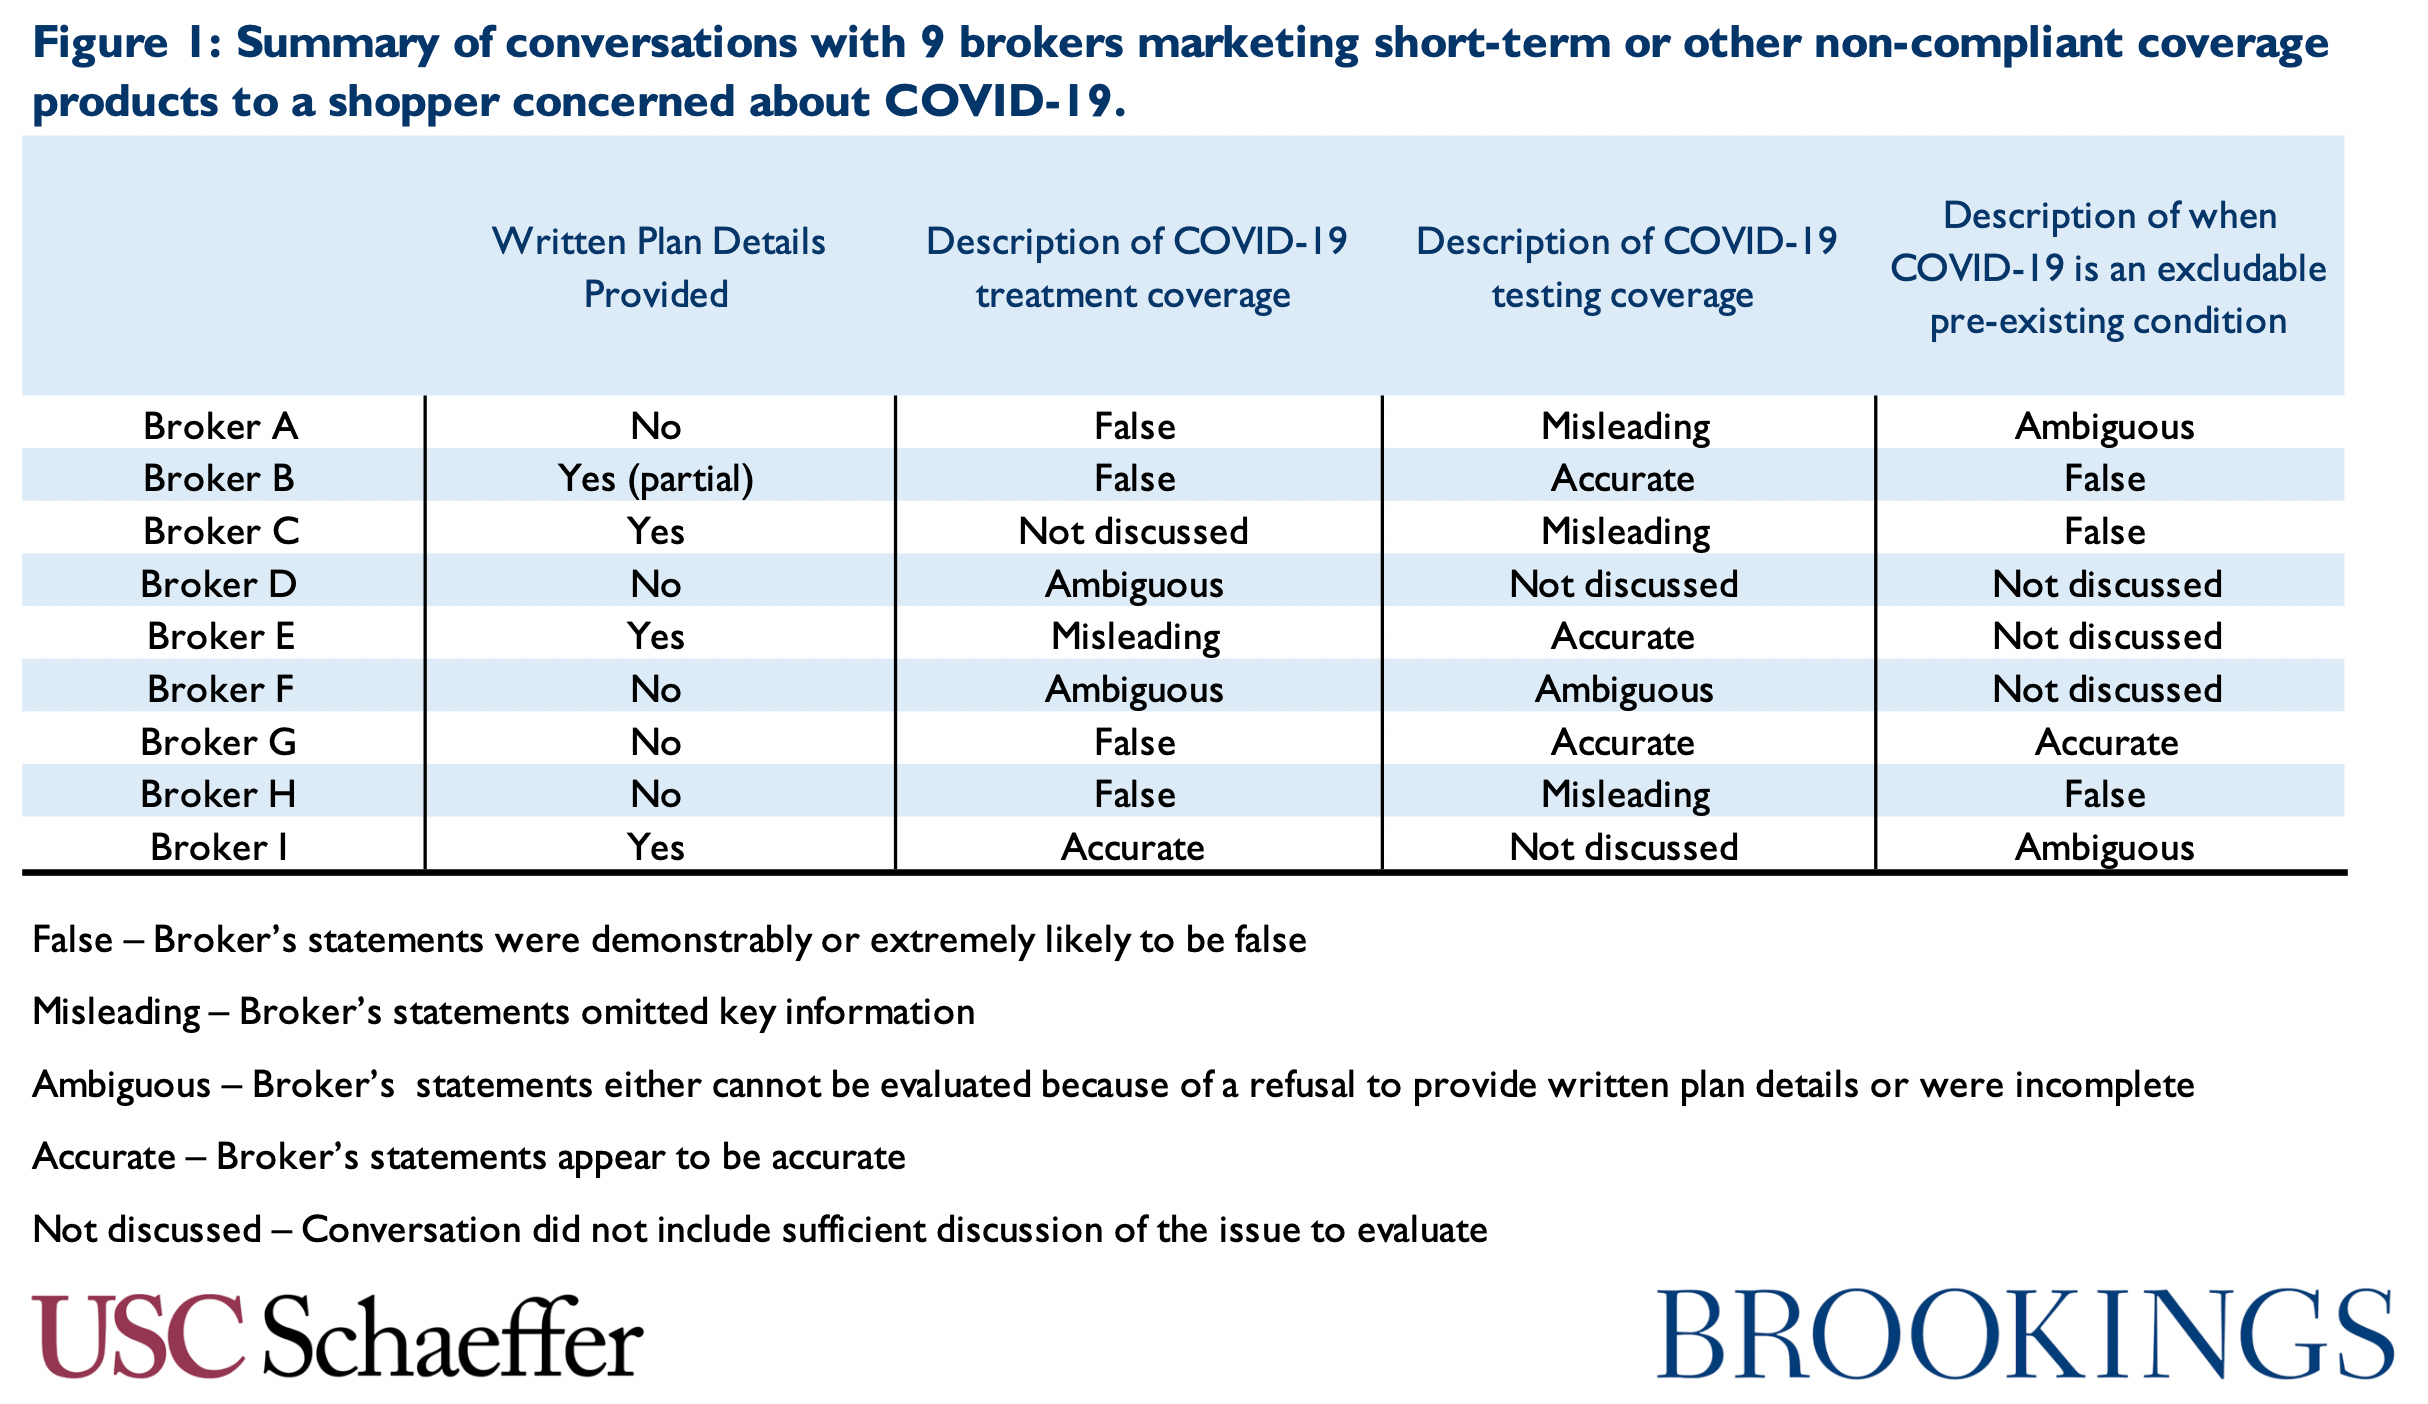 Conversations with brokers marketing short-term, non-compliant coverage plans